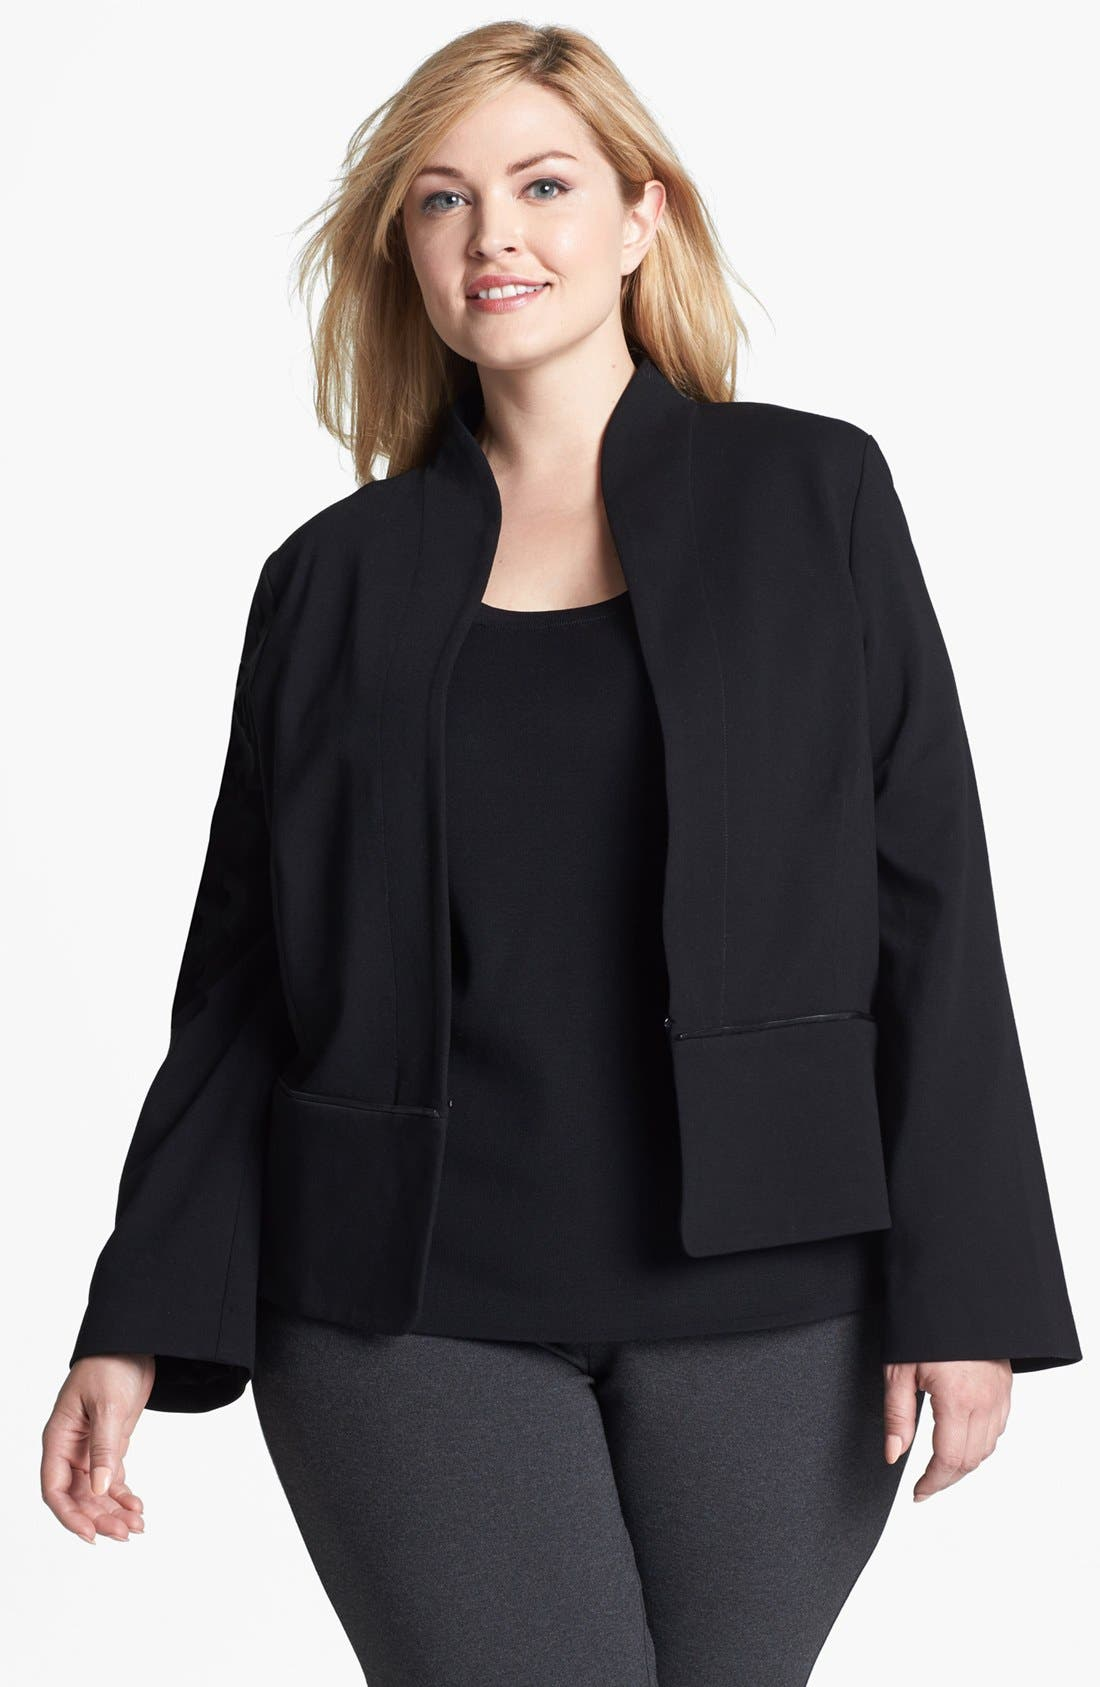 Alternate Image 1 Selected - Eileen Fisher Ponte Knit Jacket (Plus Size)